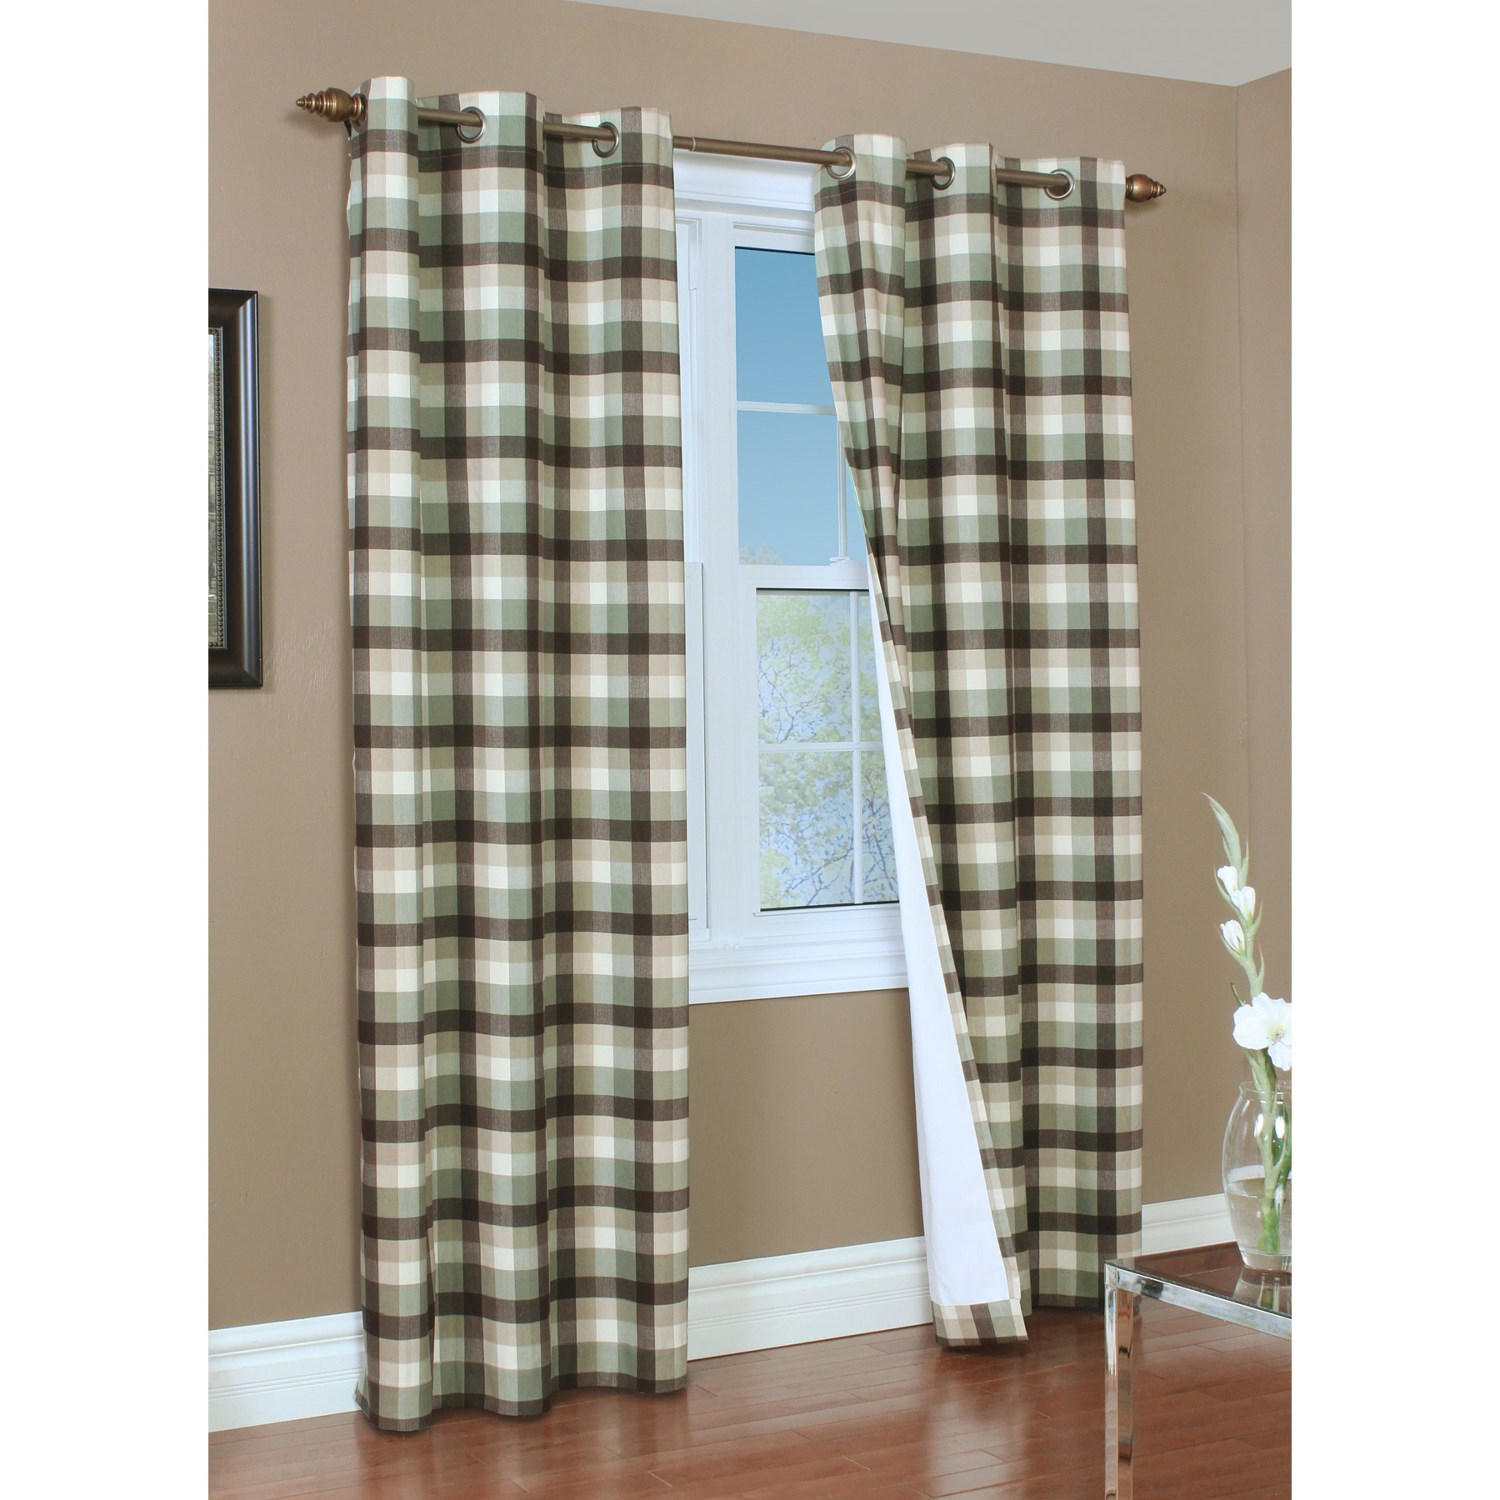 Thermalogic Weathermate Mansfield Curtains 80x63